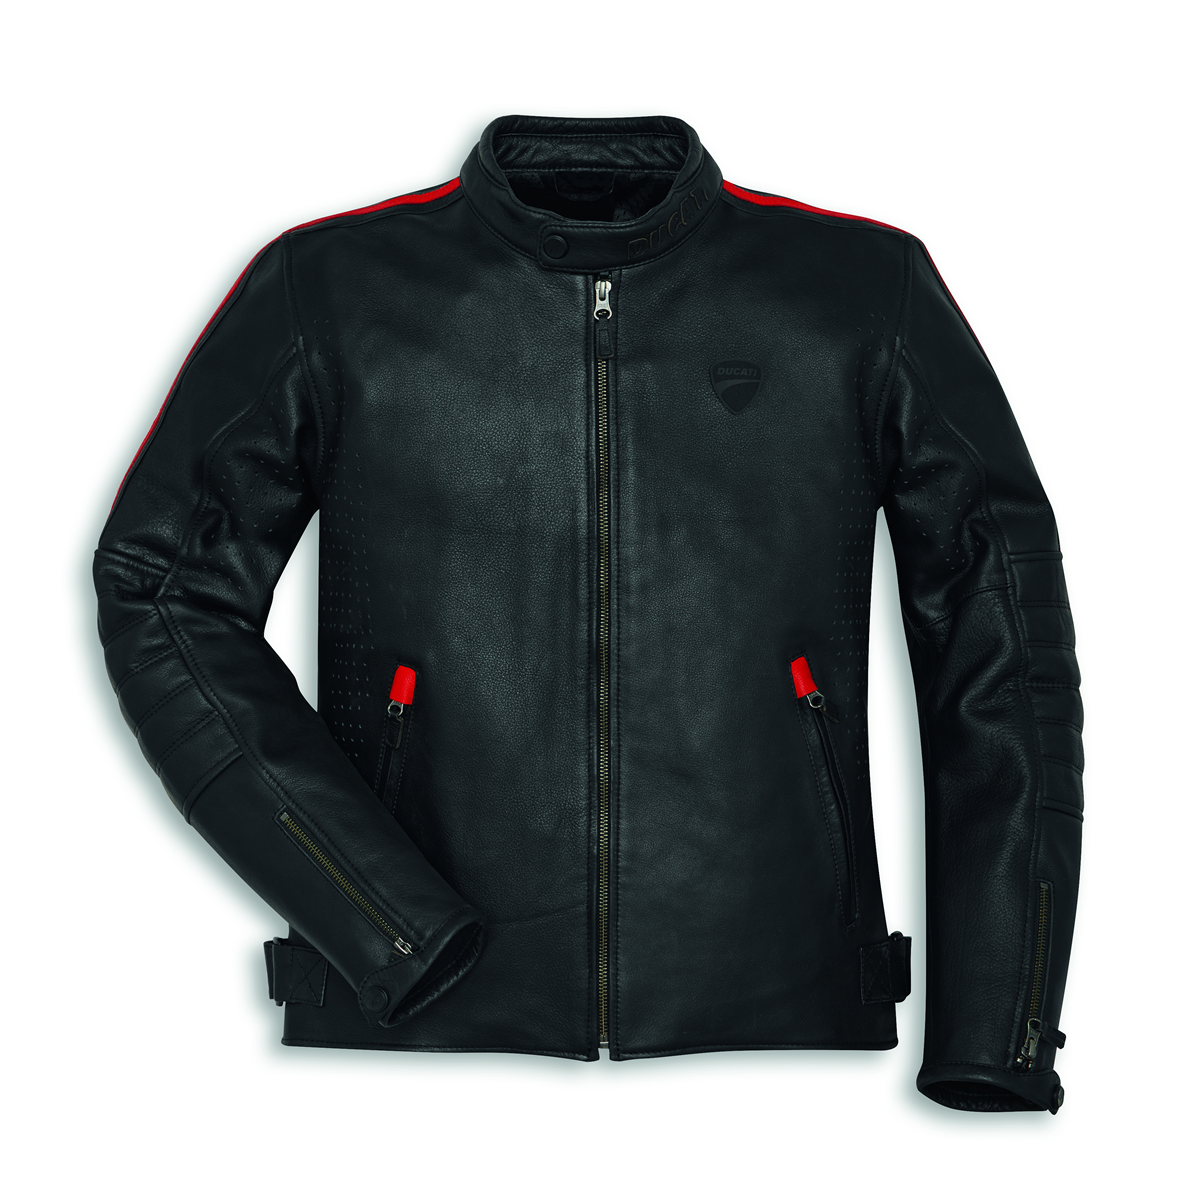 Downtown C1 - Leather jacket